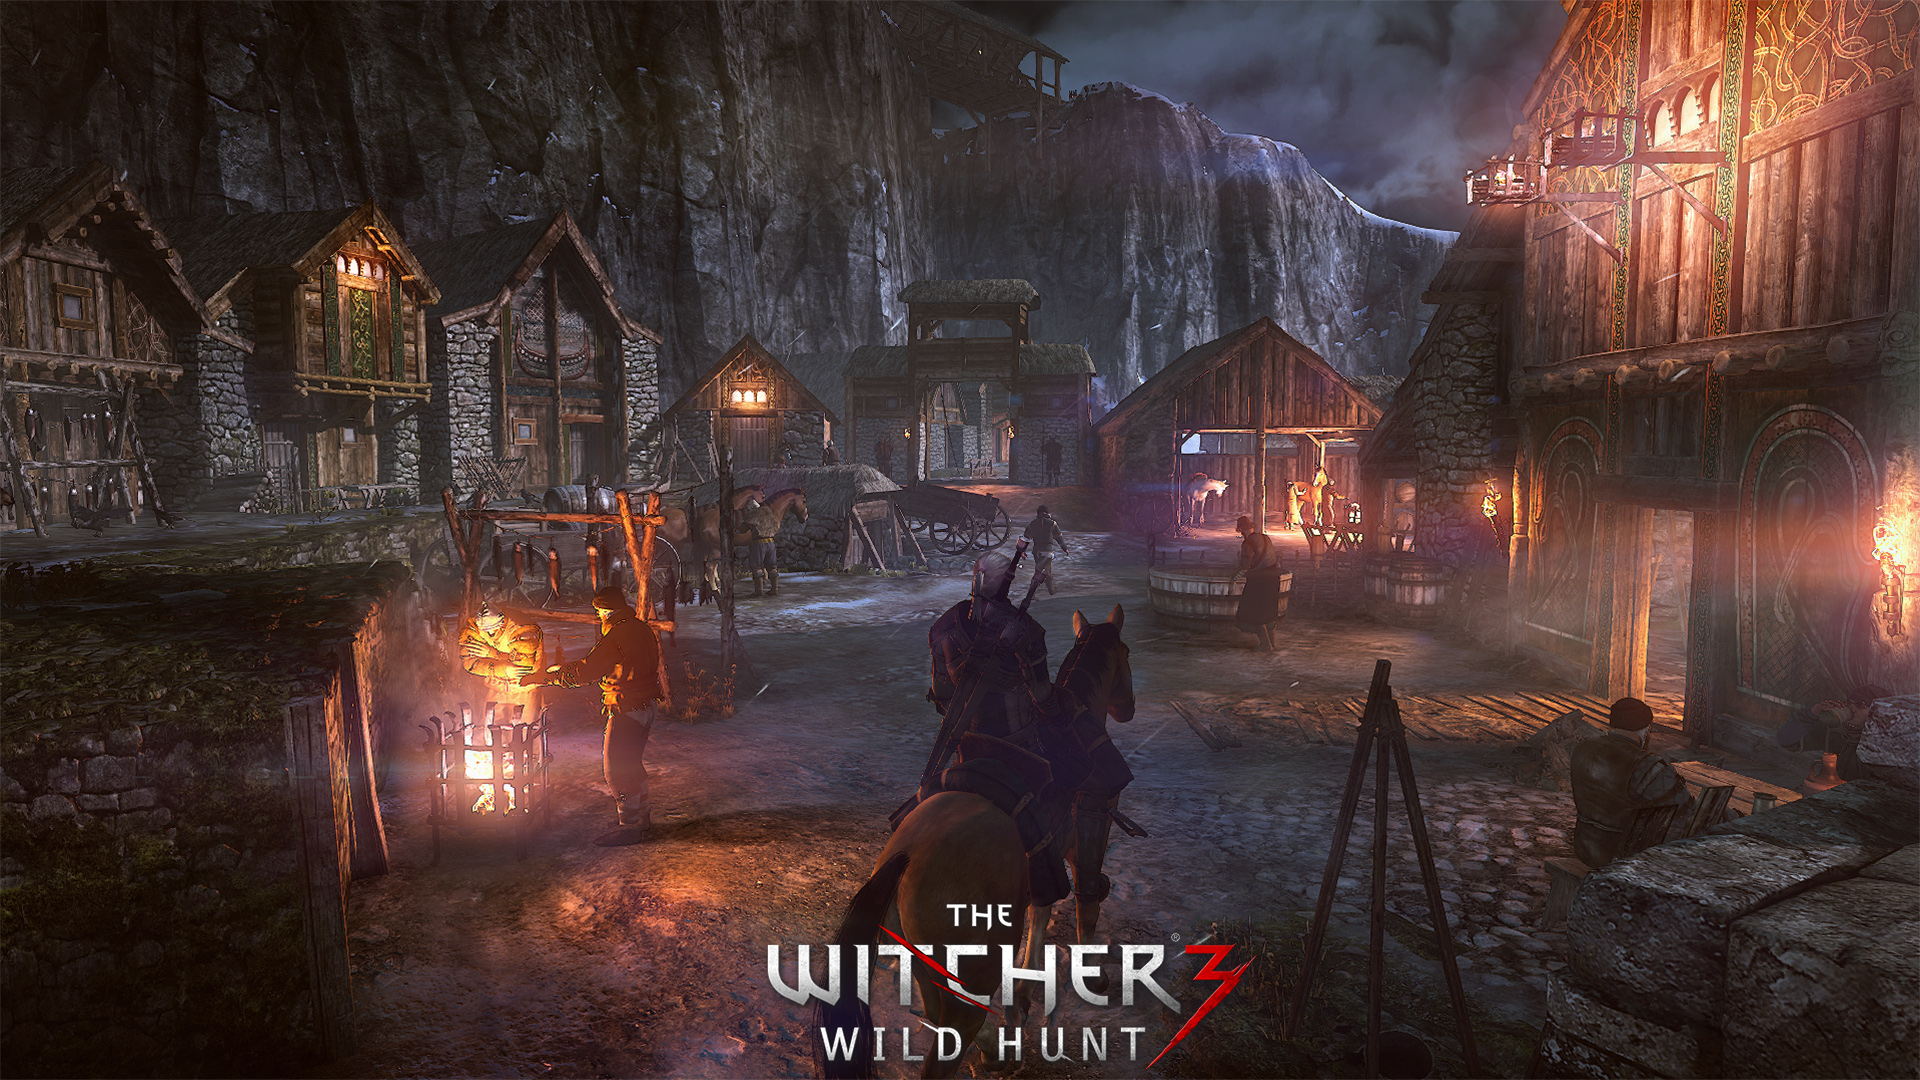 The Witcher 3 - Wild Hunt wallpapers (8)   HD Wallpapers